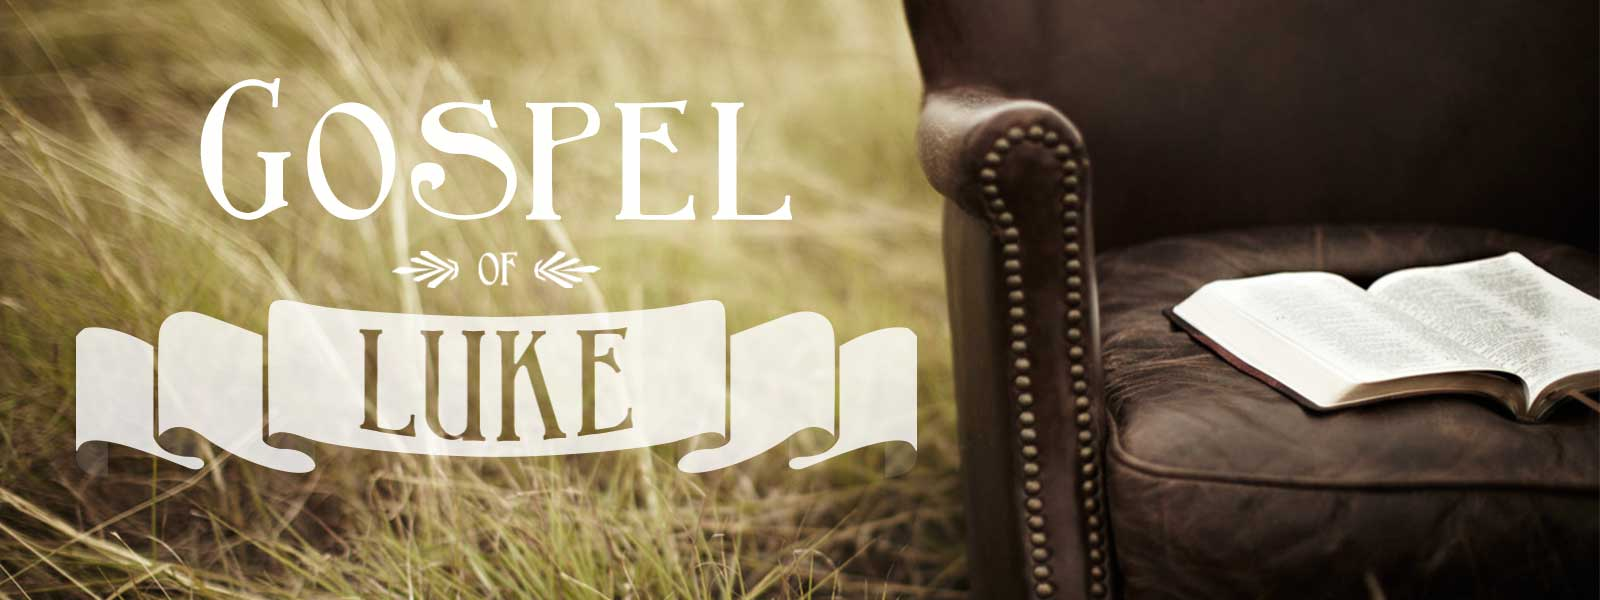 Gospel of luke sermon series idea